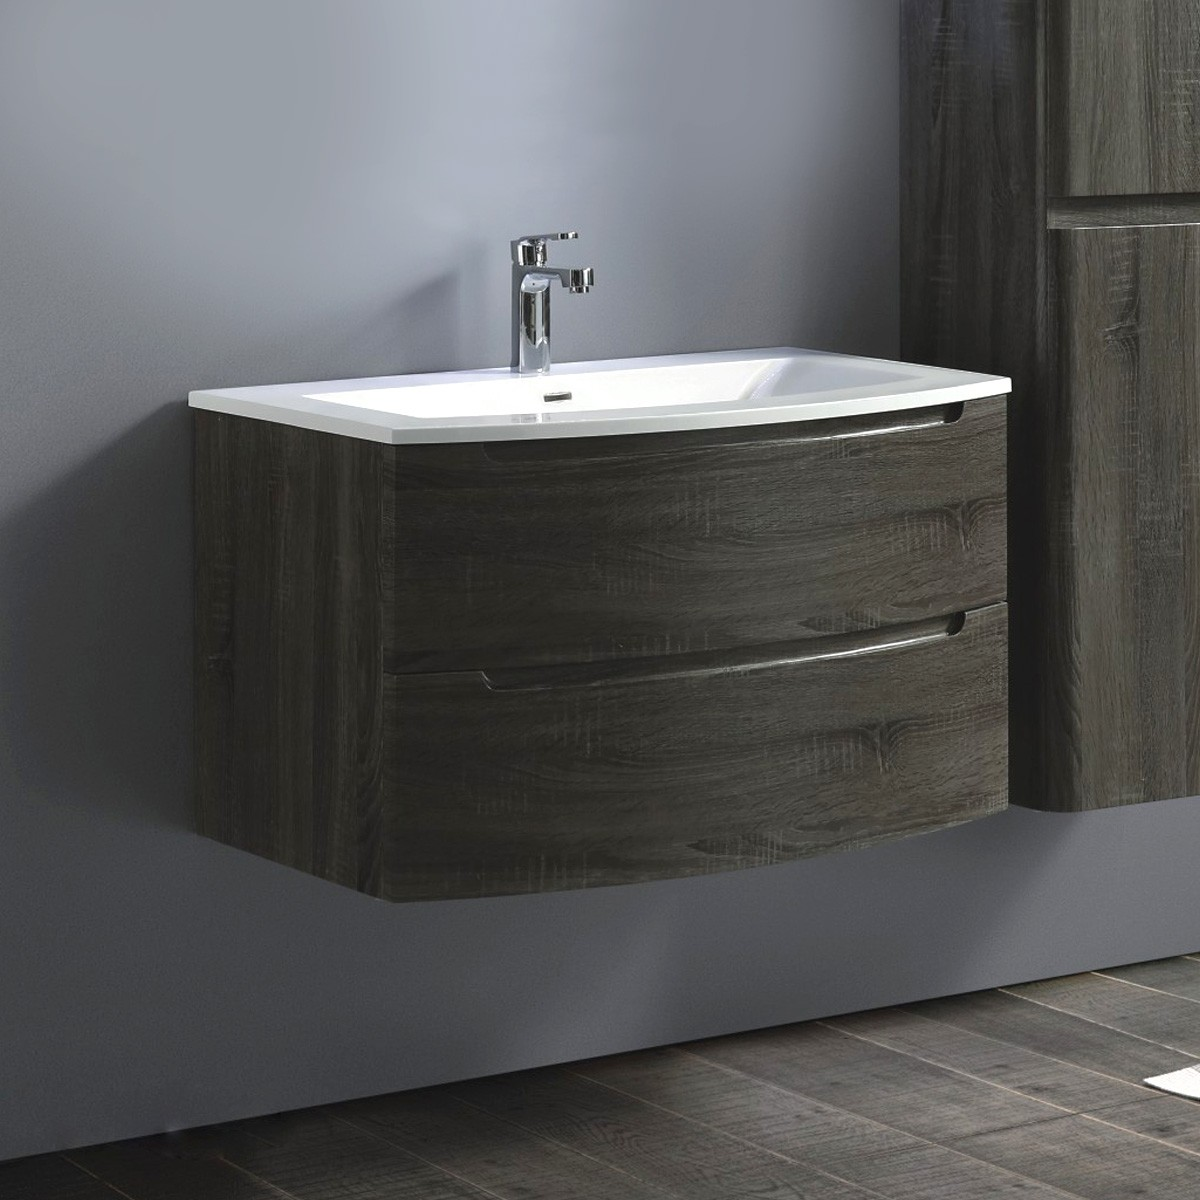 36 In. Wall Mount Vanity with Basin (ST-900-V)